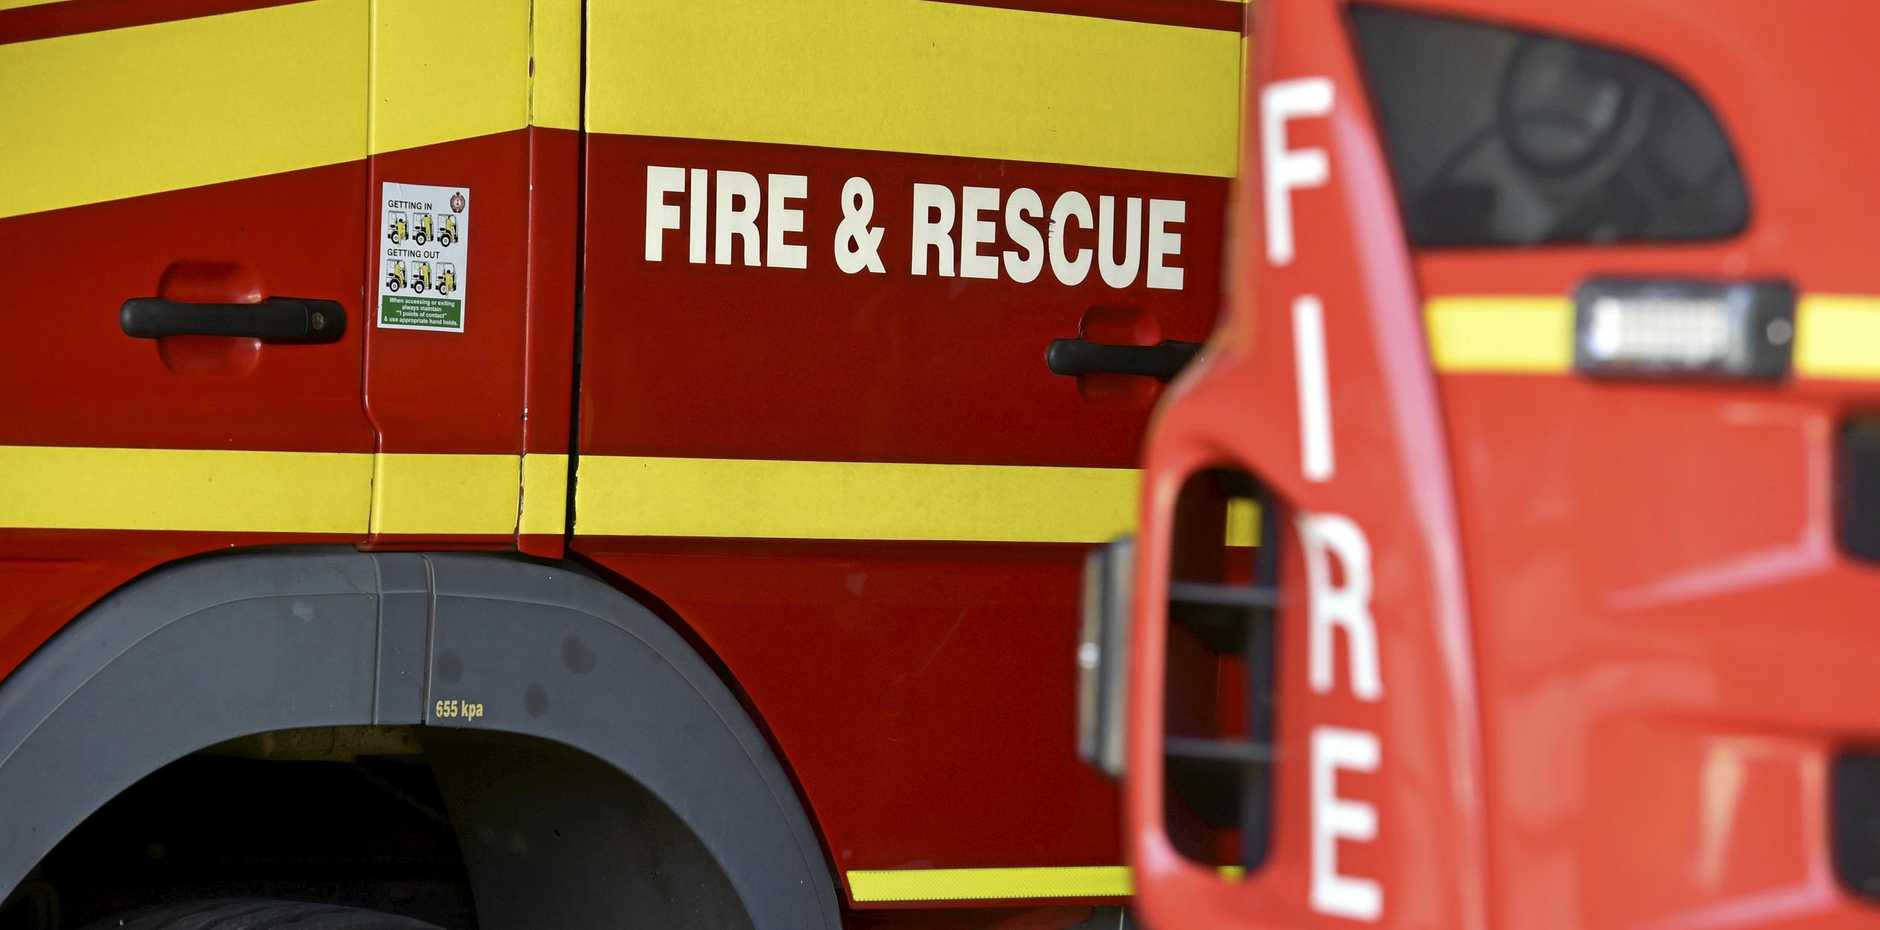 A woman is set to face trial for allegedly setting her regional housing unit alight after being served an